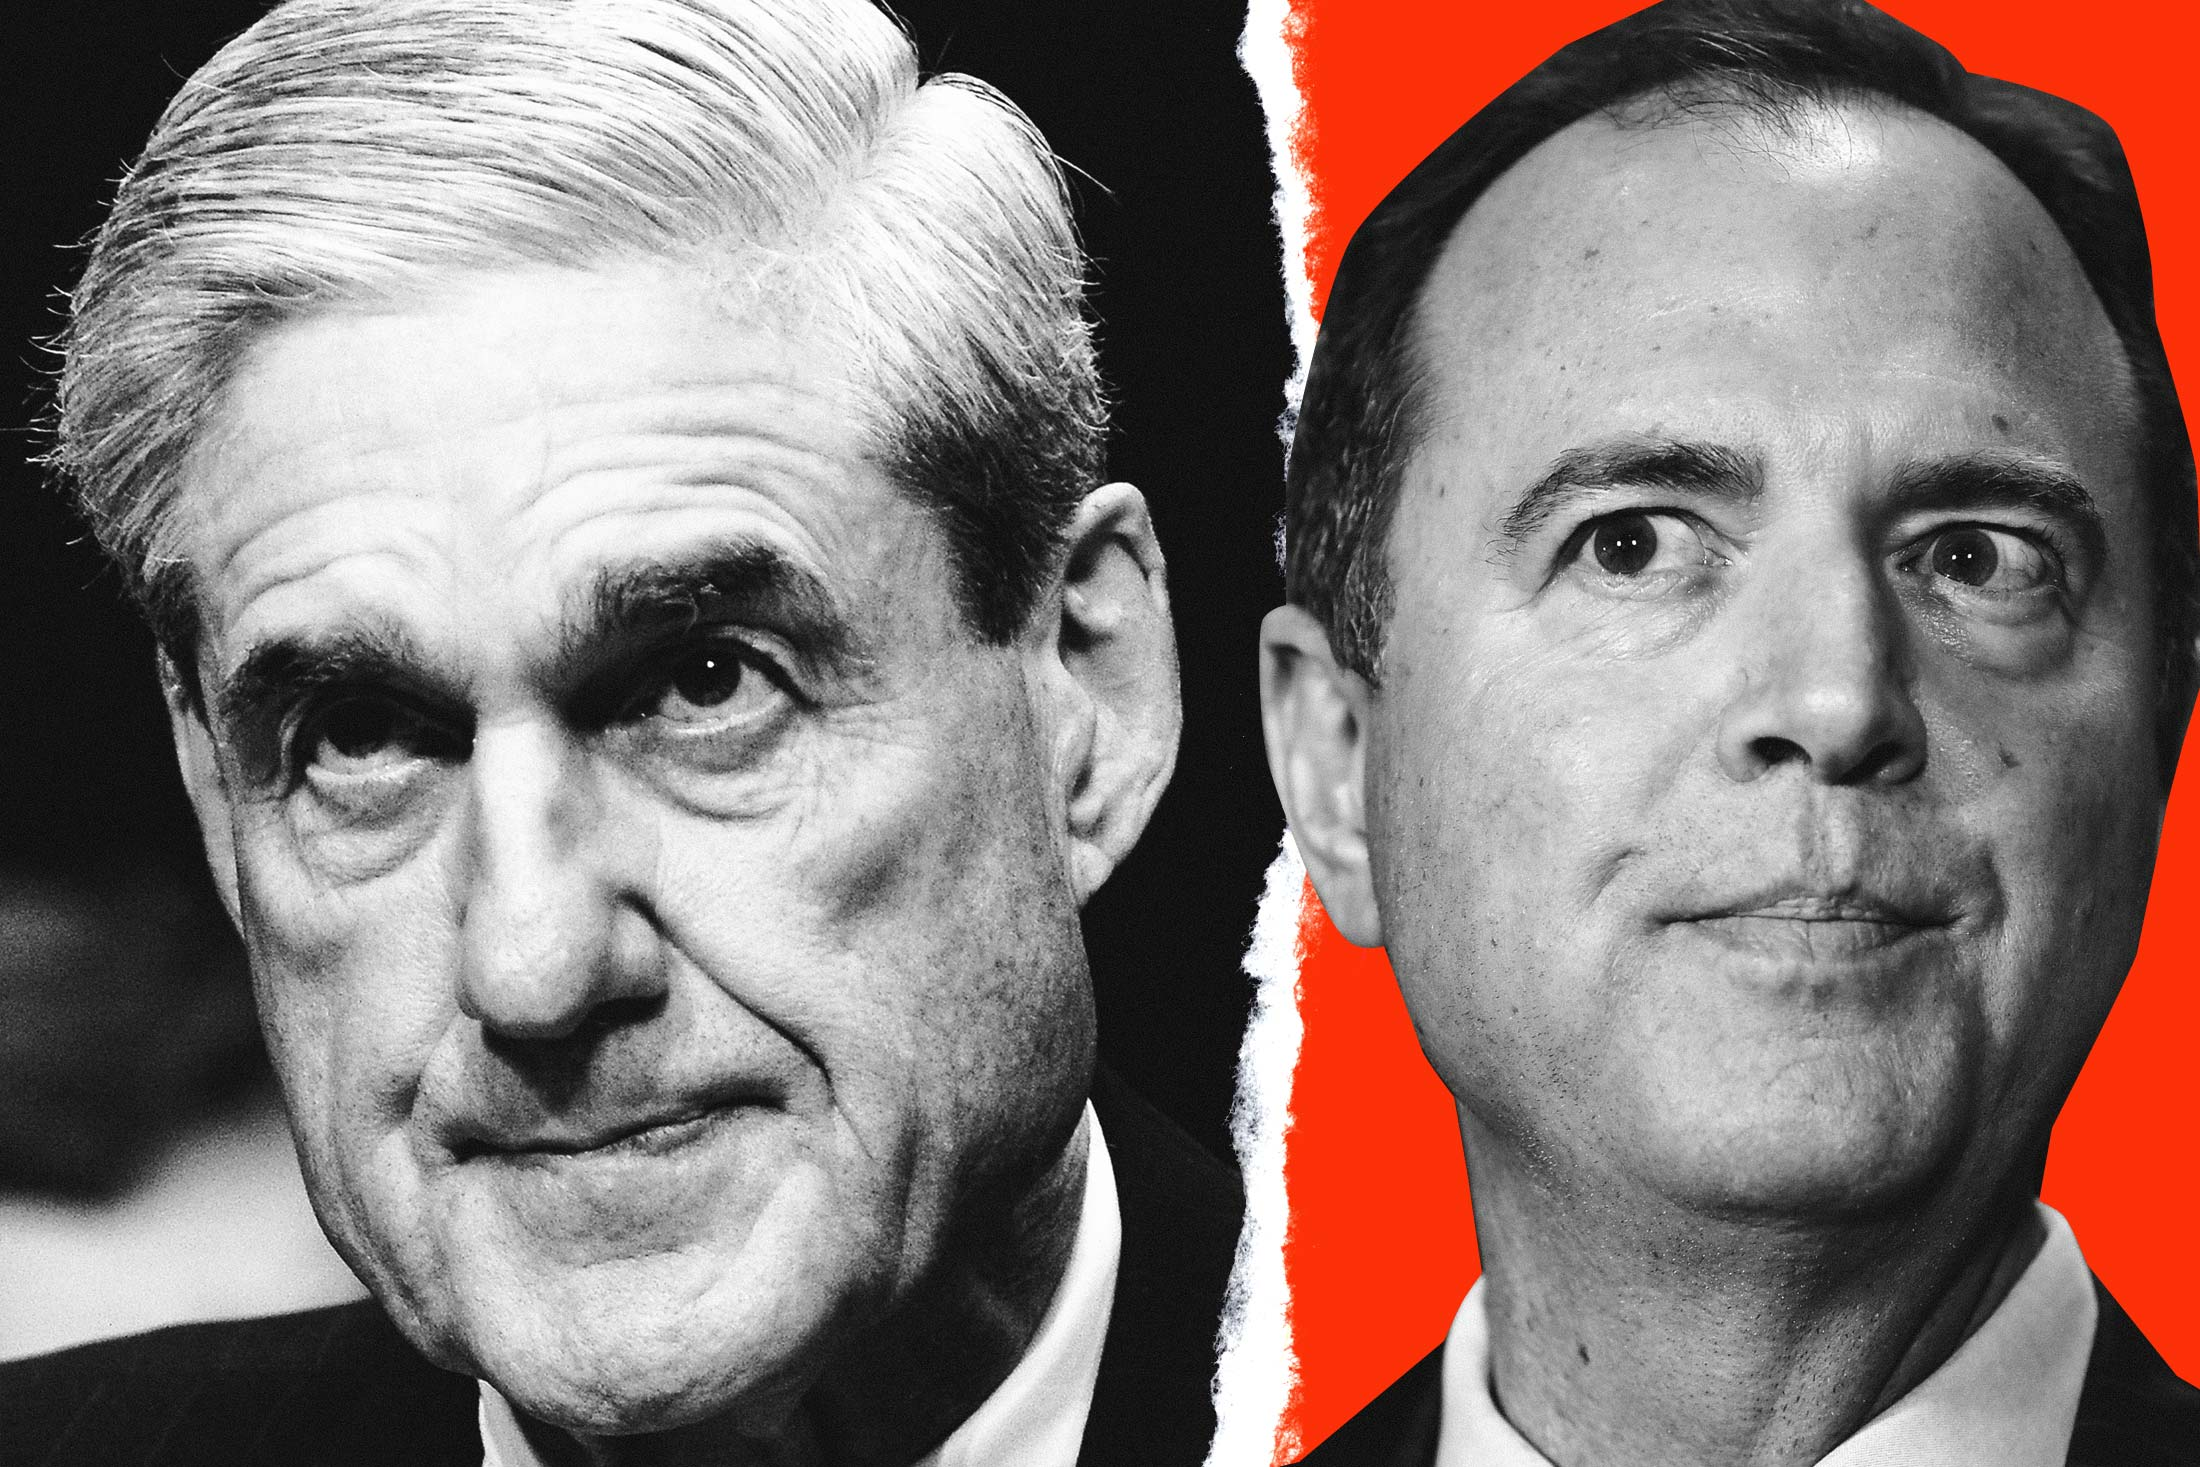 A collage featuring black-and-white photos of Robert Mueller and Adam Schiff.